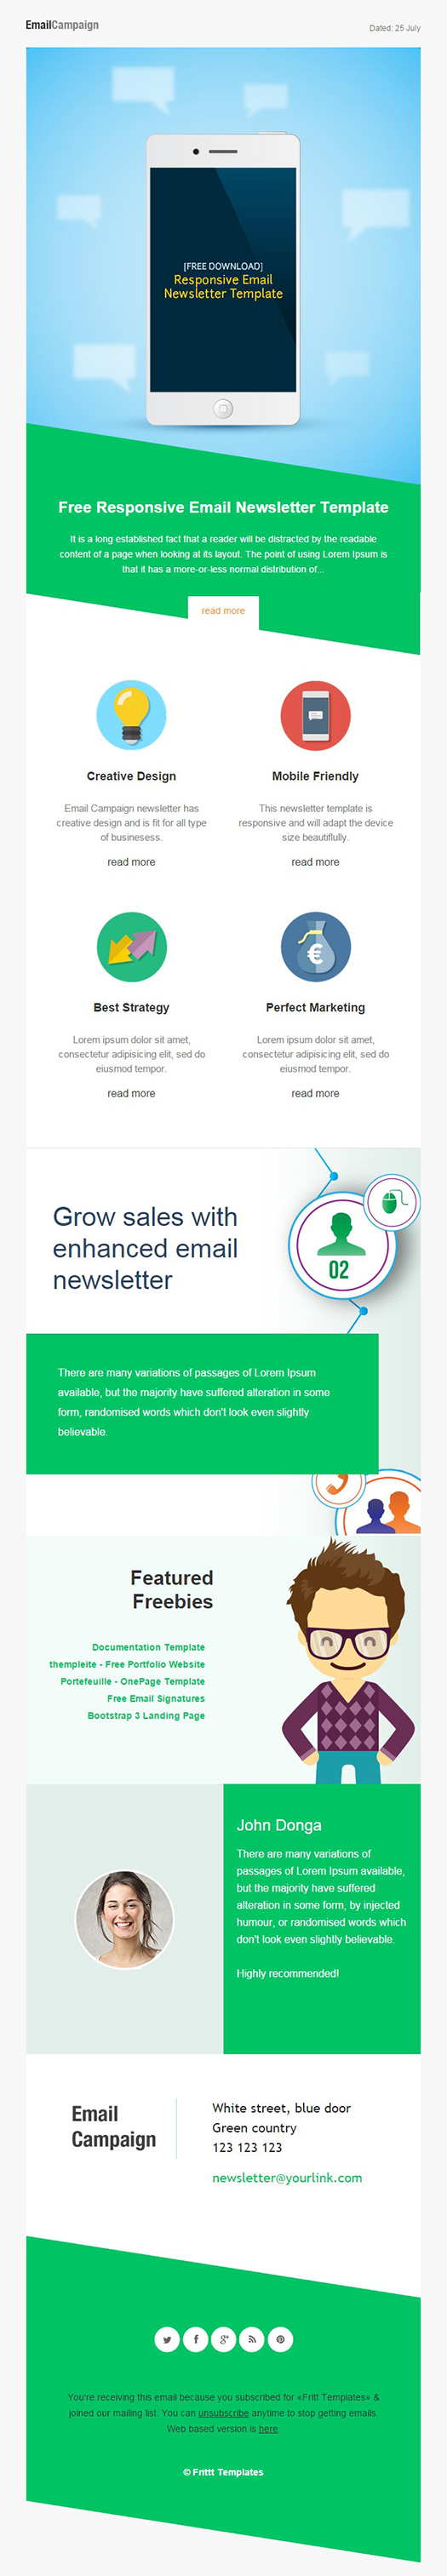 Responsive Email Newsletter Template for Effective Email Marketing ...